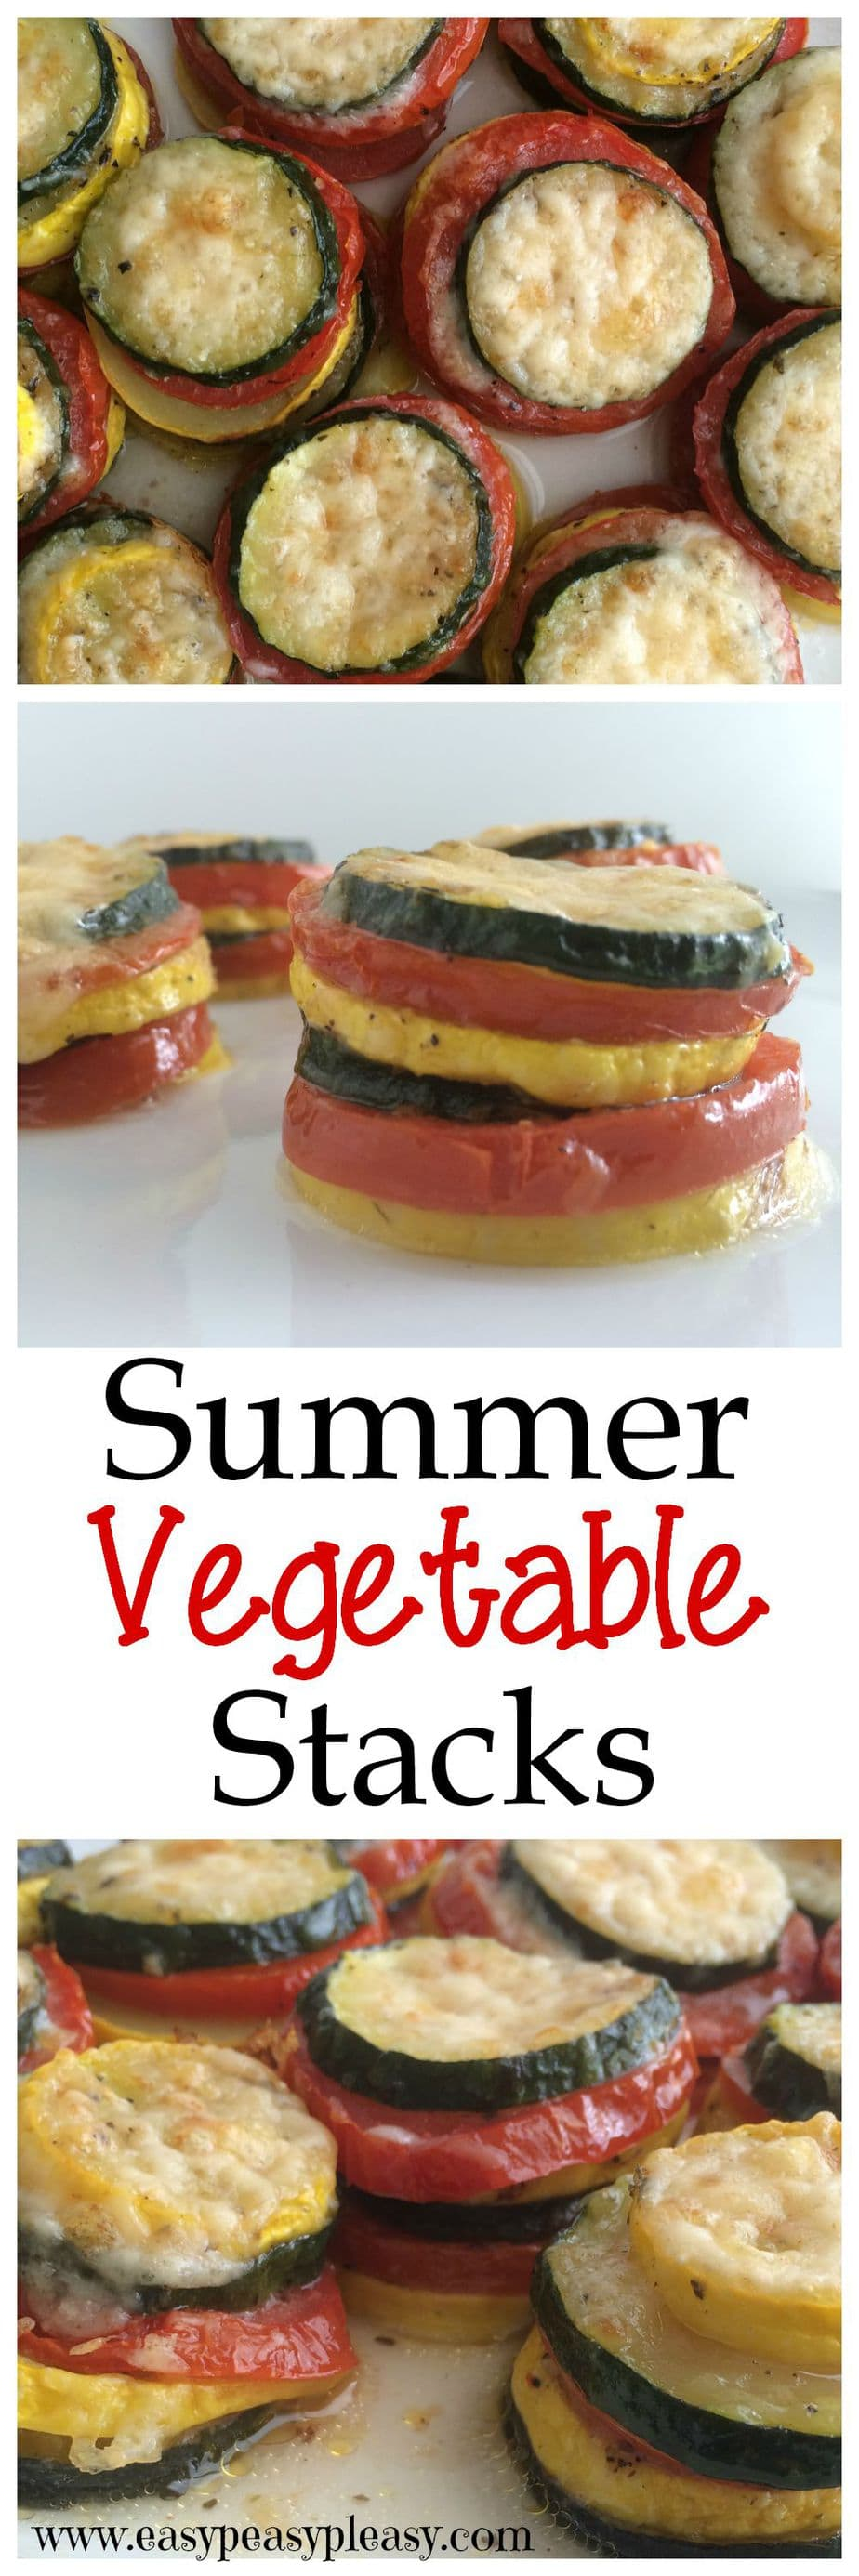 Summer Vegetable Stacks are a fun way to serve up the abundance of summertime gardens and they are super easy to make.